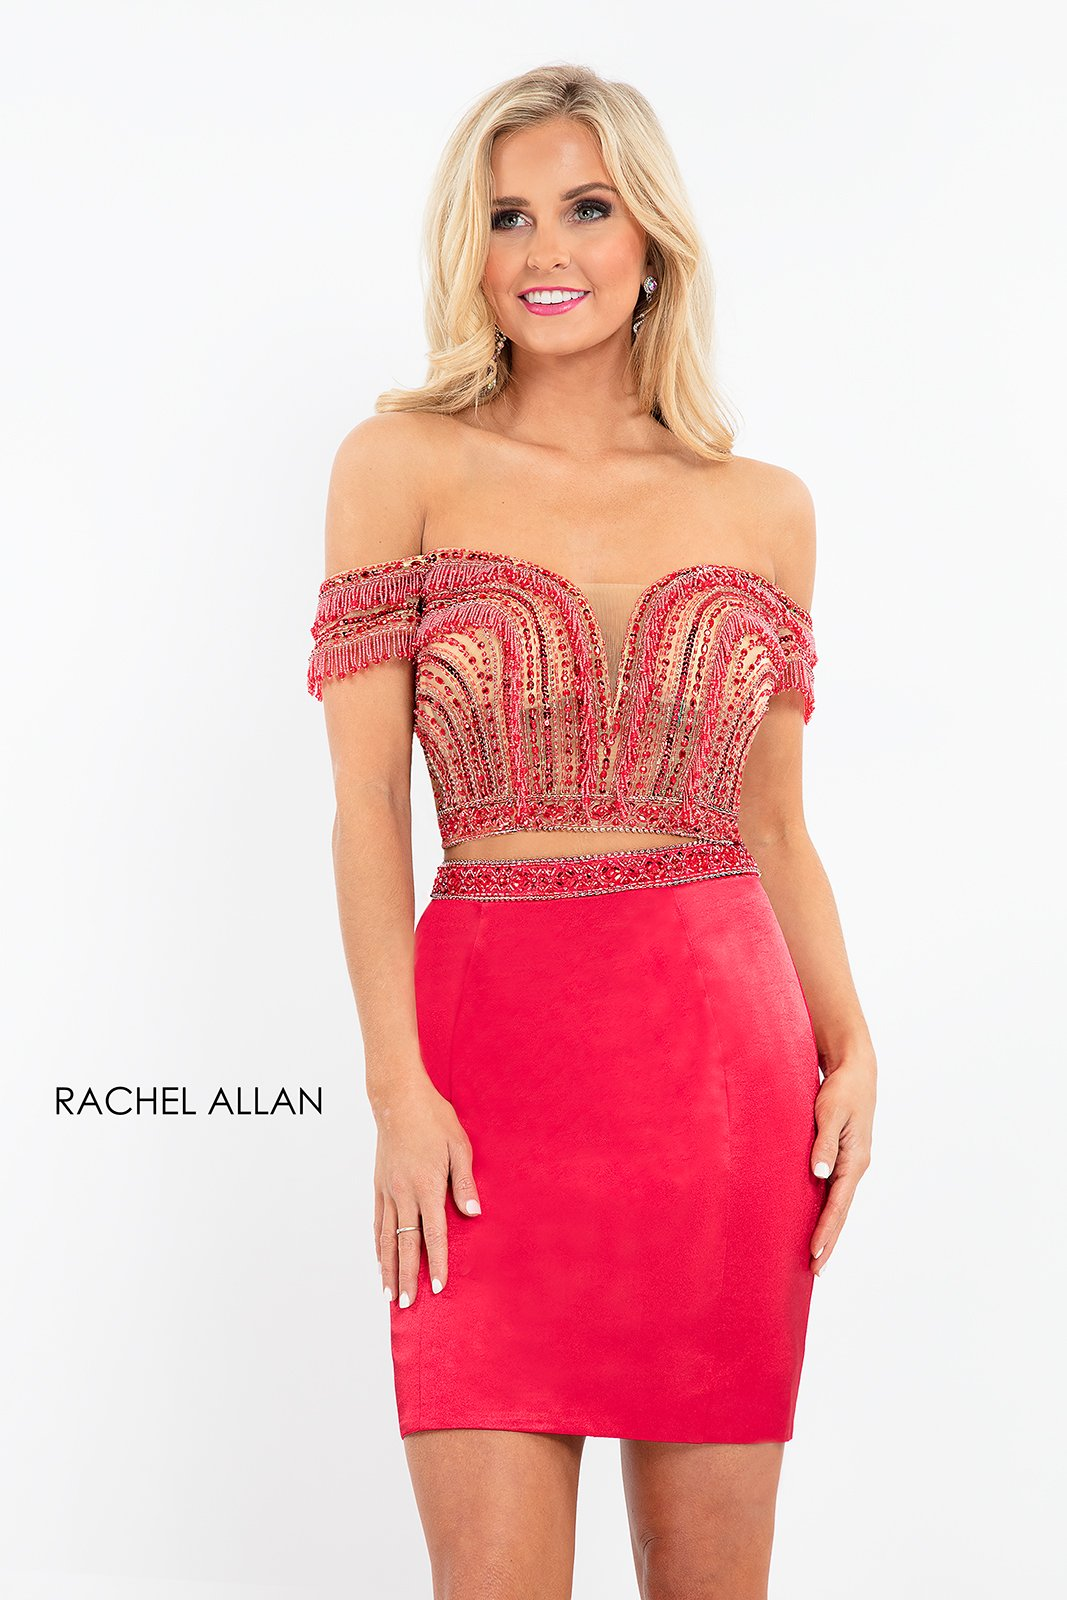 Off The Shoulder Two-Piece Homecoming Dresses in Red Color